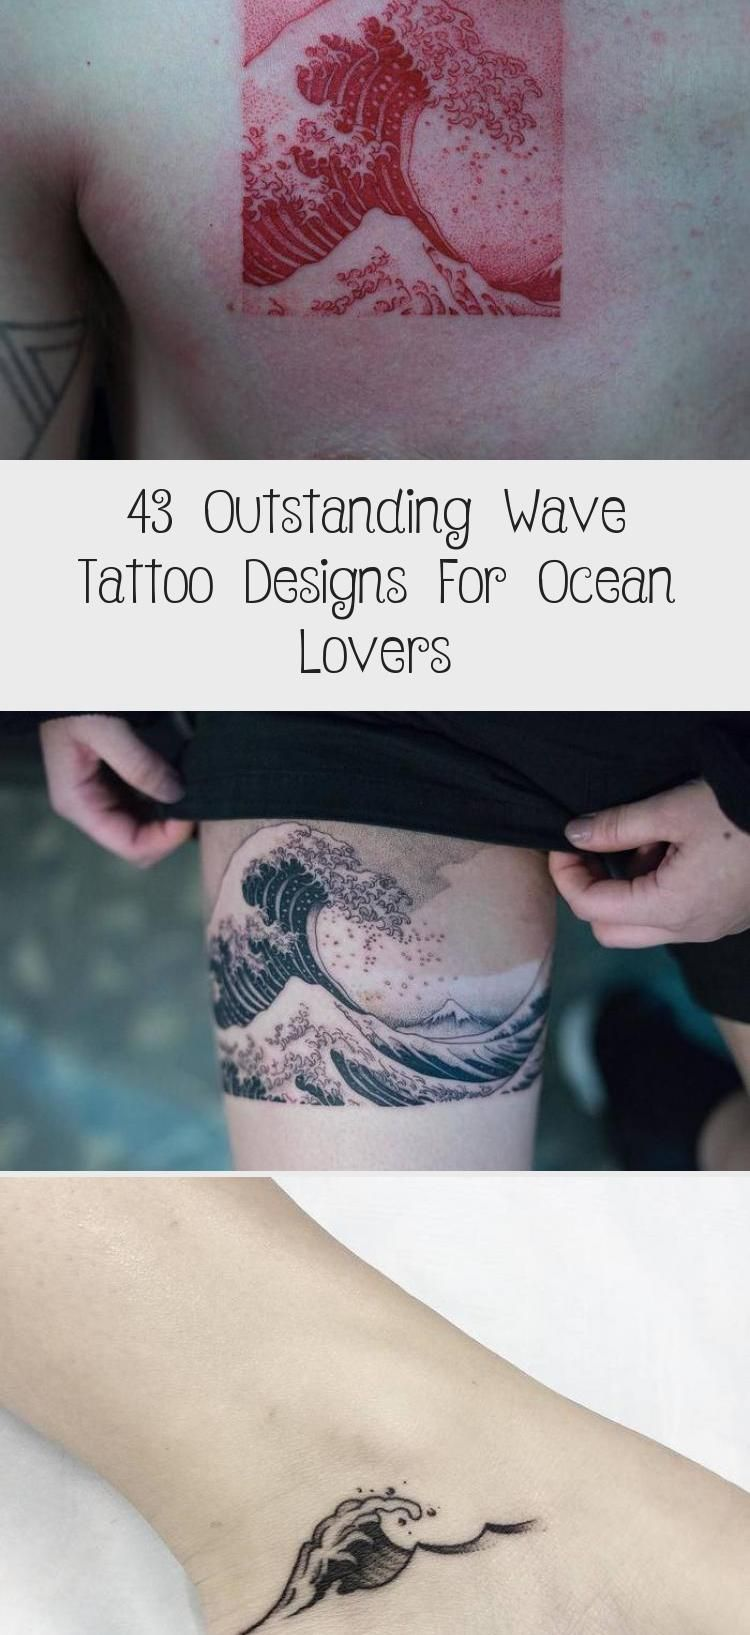 Photo of 43 Outstanding Wave Tattoo Designs For Ocean Lovers – Tattoo İdeas